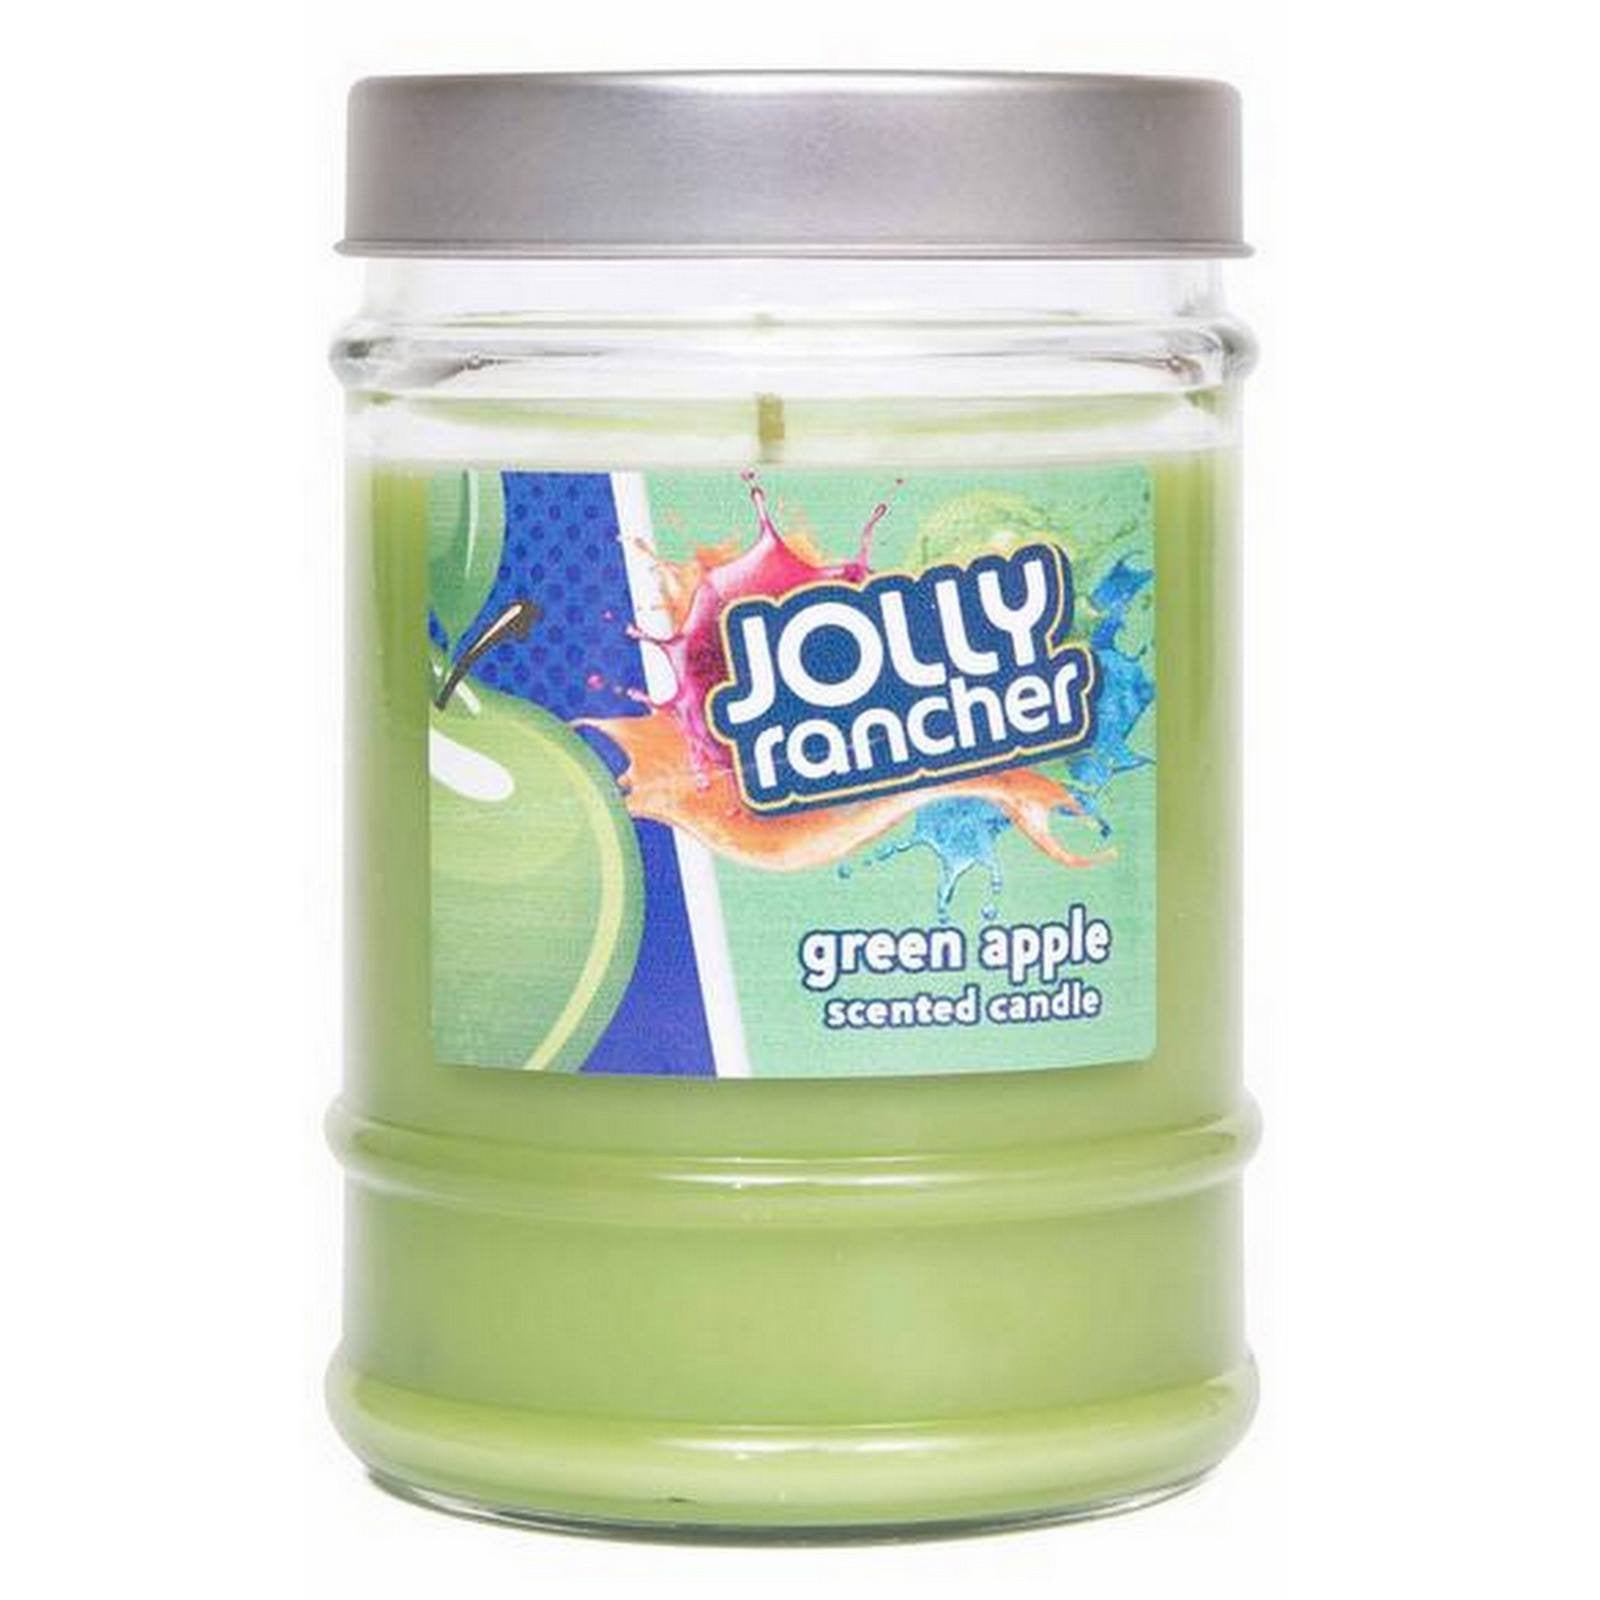 Jolly Rancher Green Apple Scented Canister Jar Candle - Candlemart.com